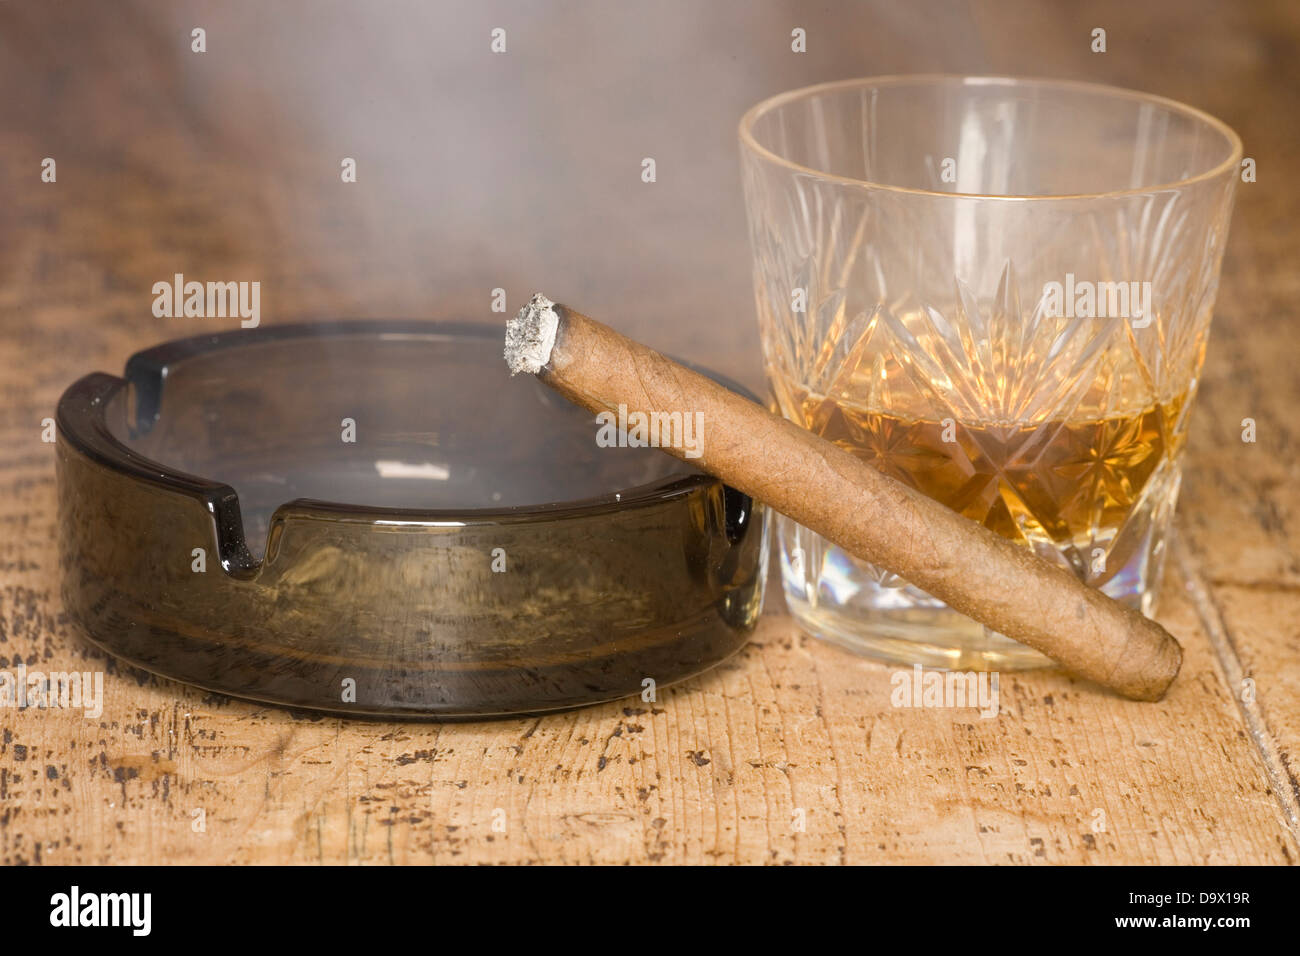 cigar and whisky on a wooden table - Stock Image